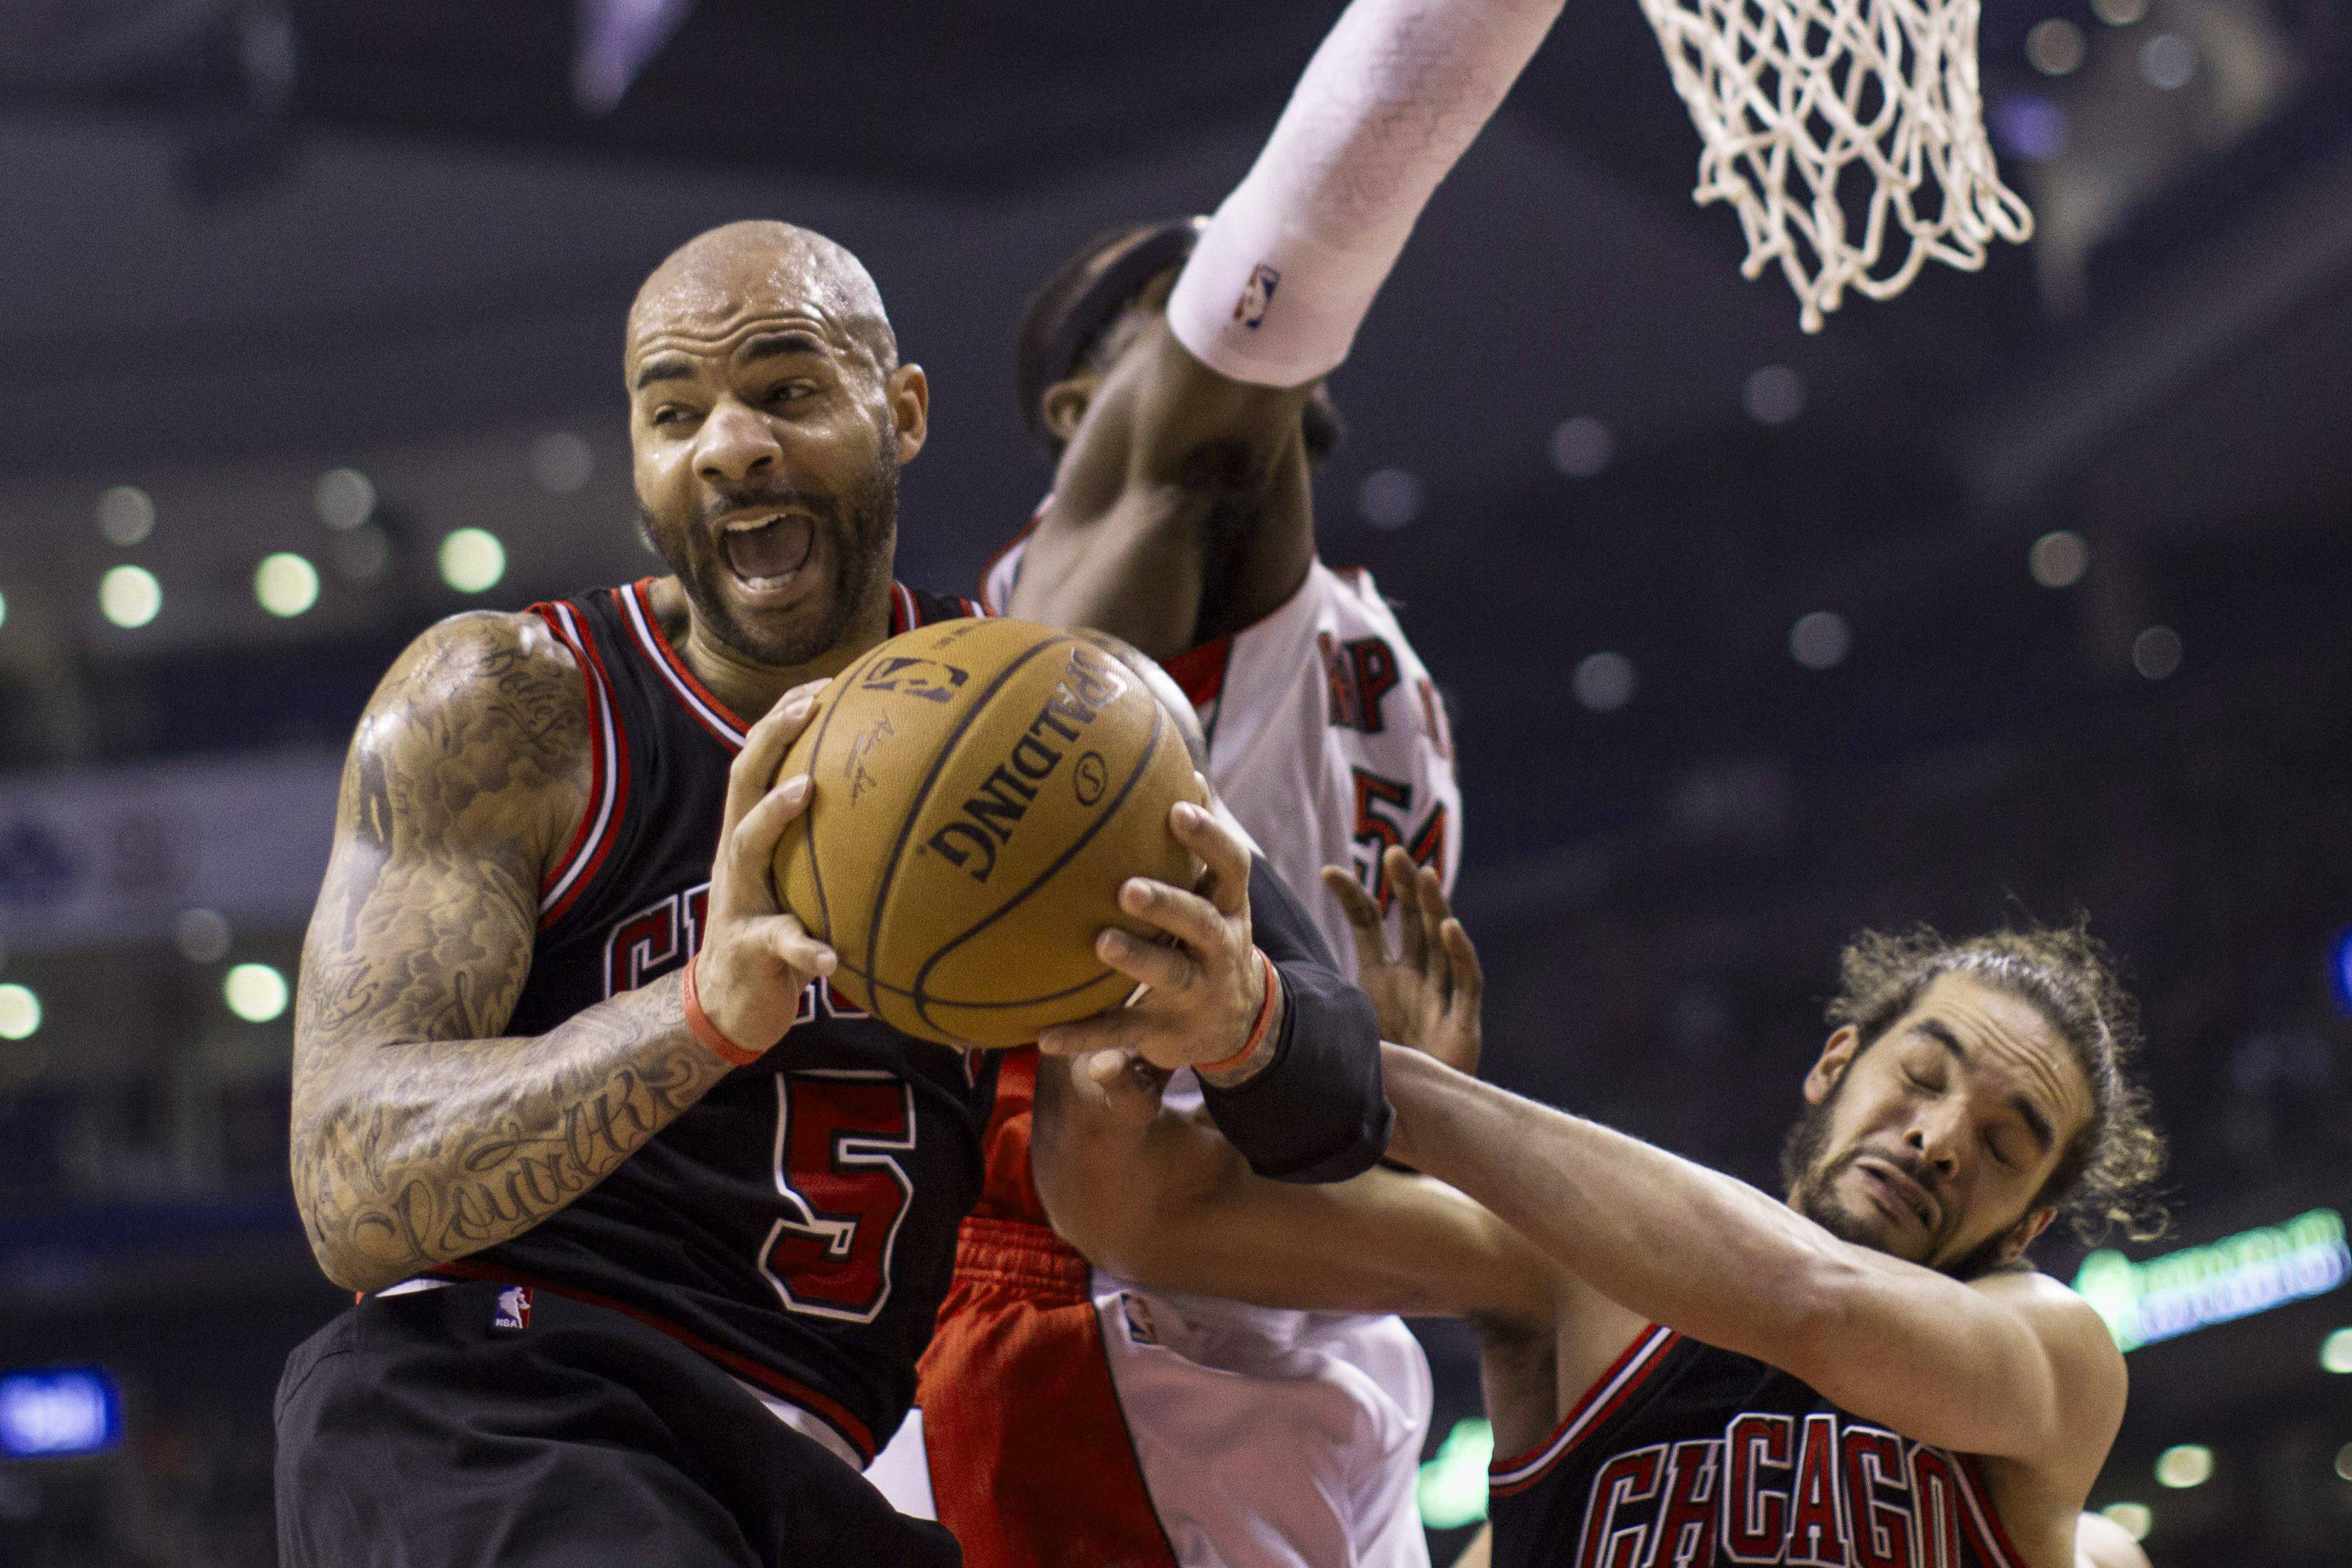 Bulls forward Carlos Boozer (5) grabs a rebound in front of Toronto's Patrick Patterson and Joakim Noah during Wednesday's NBA game in Toronto.